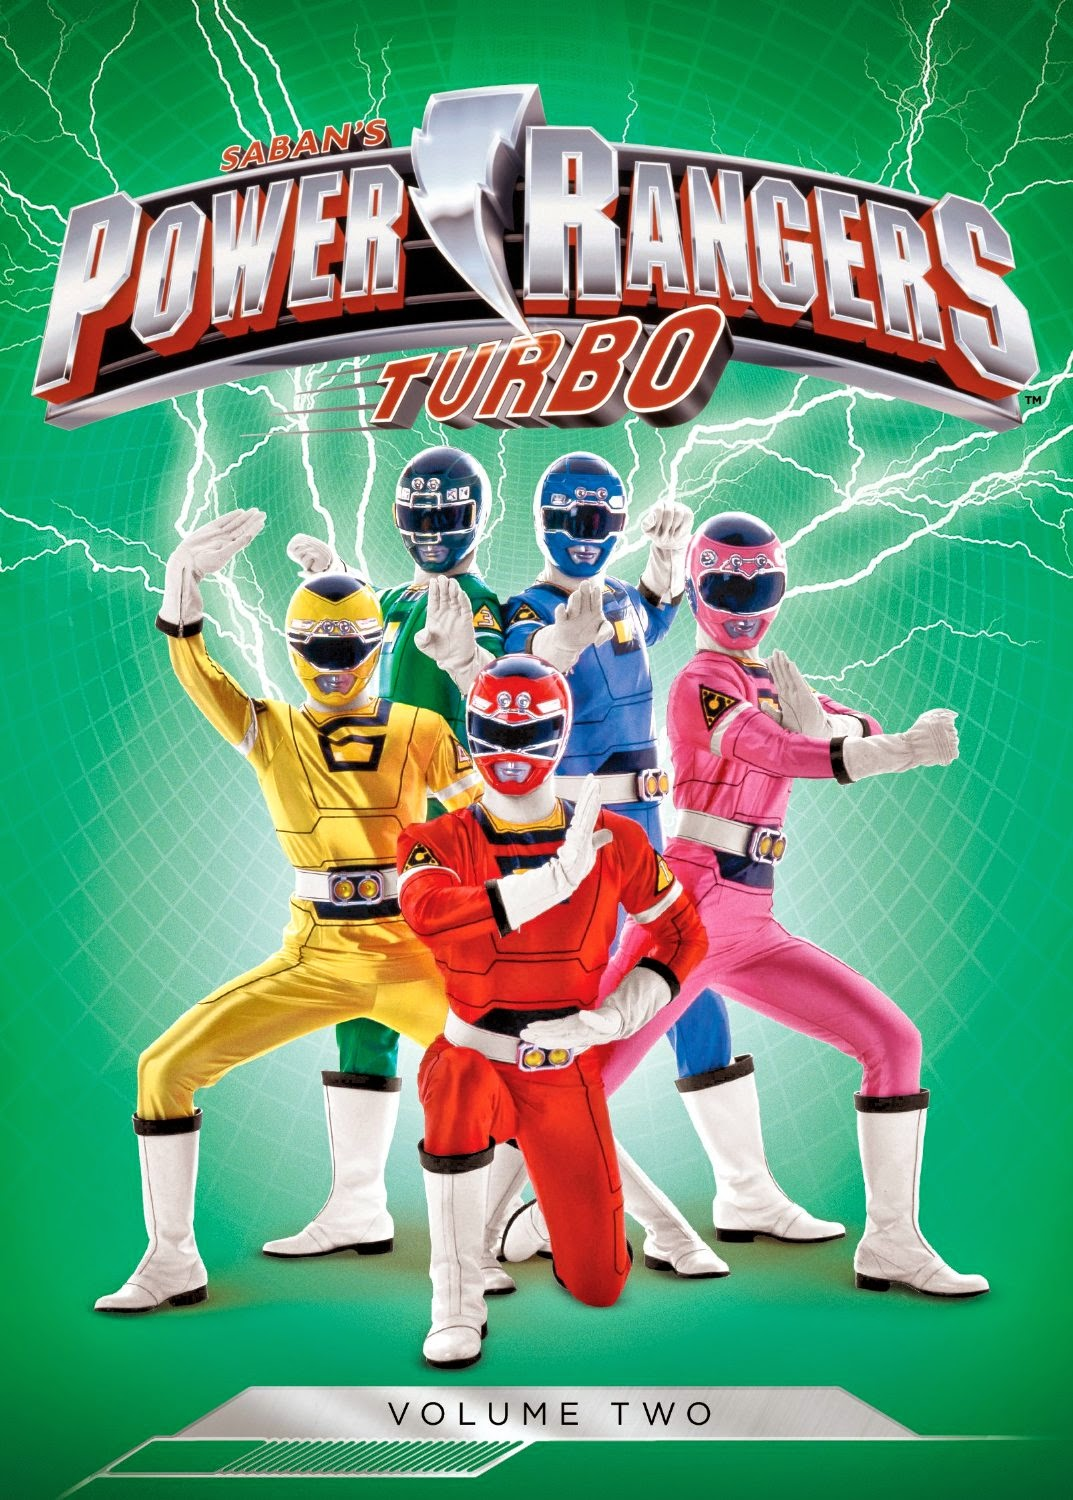 power rangers turbo vol 2 on dvd june 3 contest over. Black Bedroom Furniture Sets. Home Design Ideas